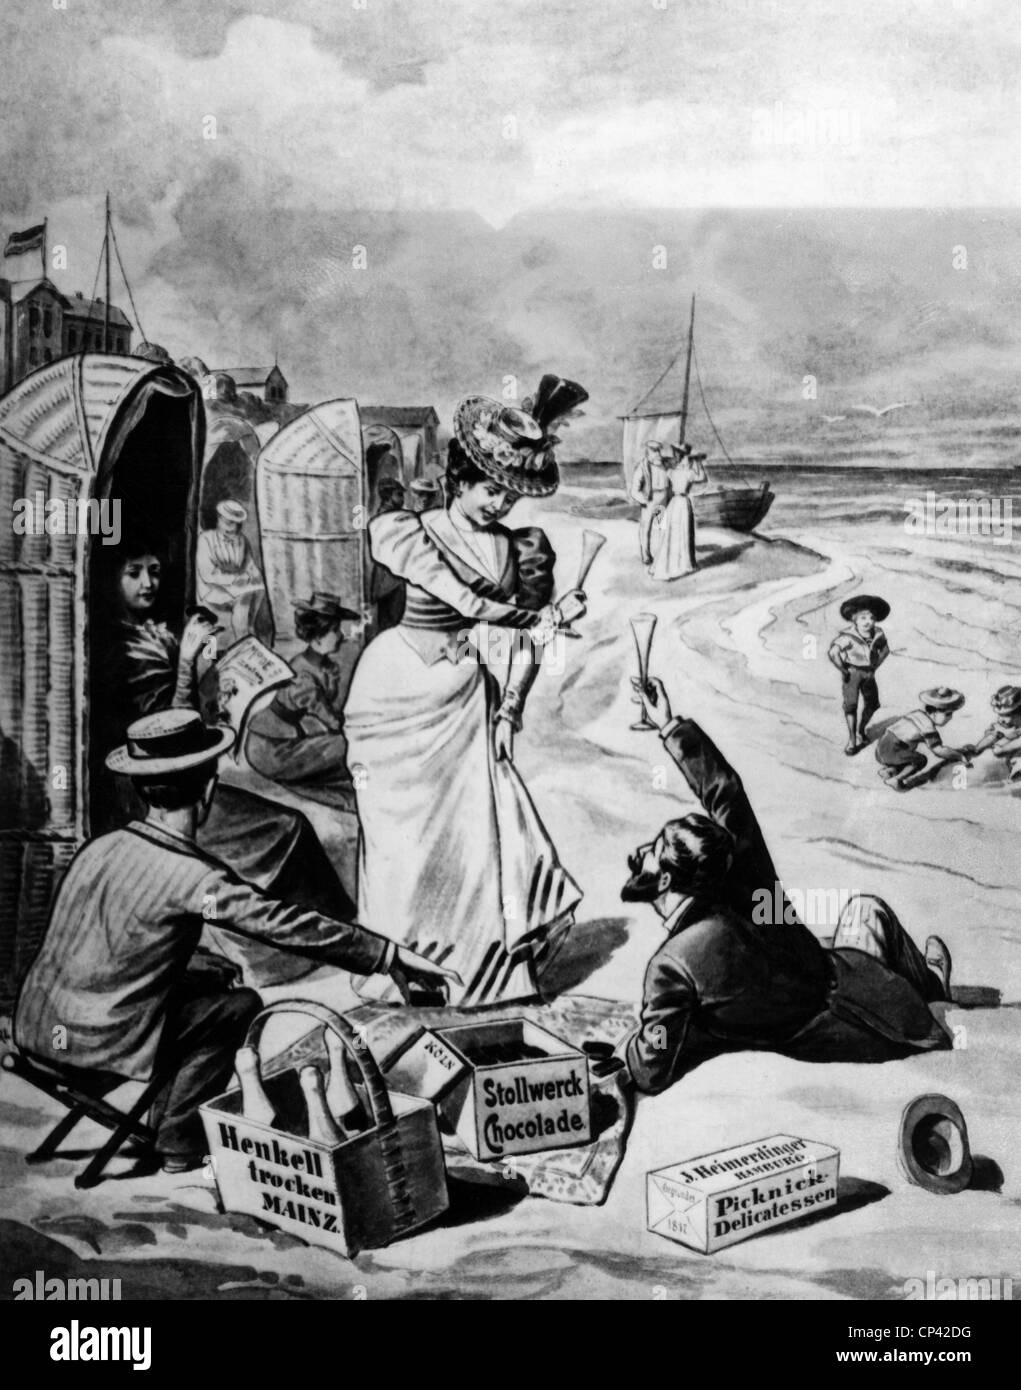 bathing, seaside resort, party on the beach, wood engraving by R. Sperl, Germany, 1899, Additional-Rights-Clearences - Stock Image